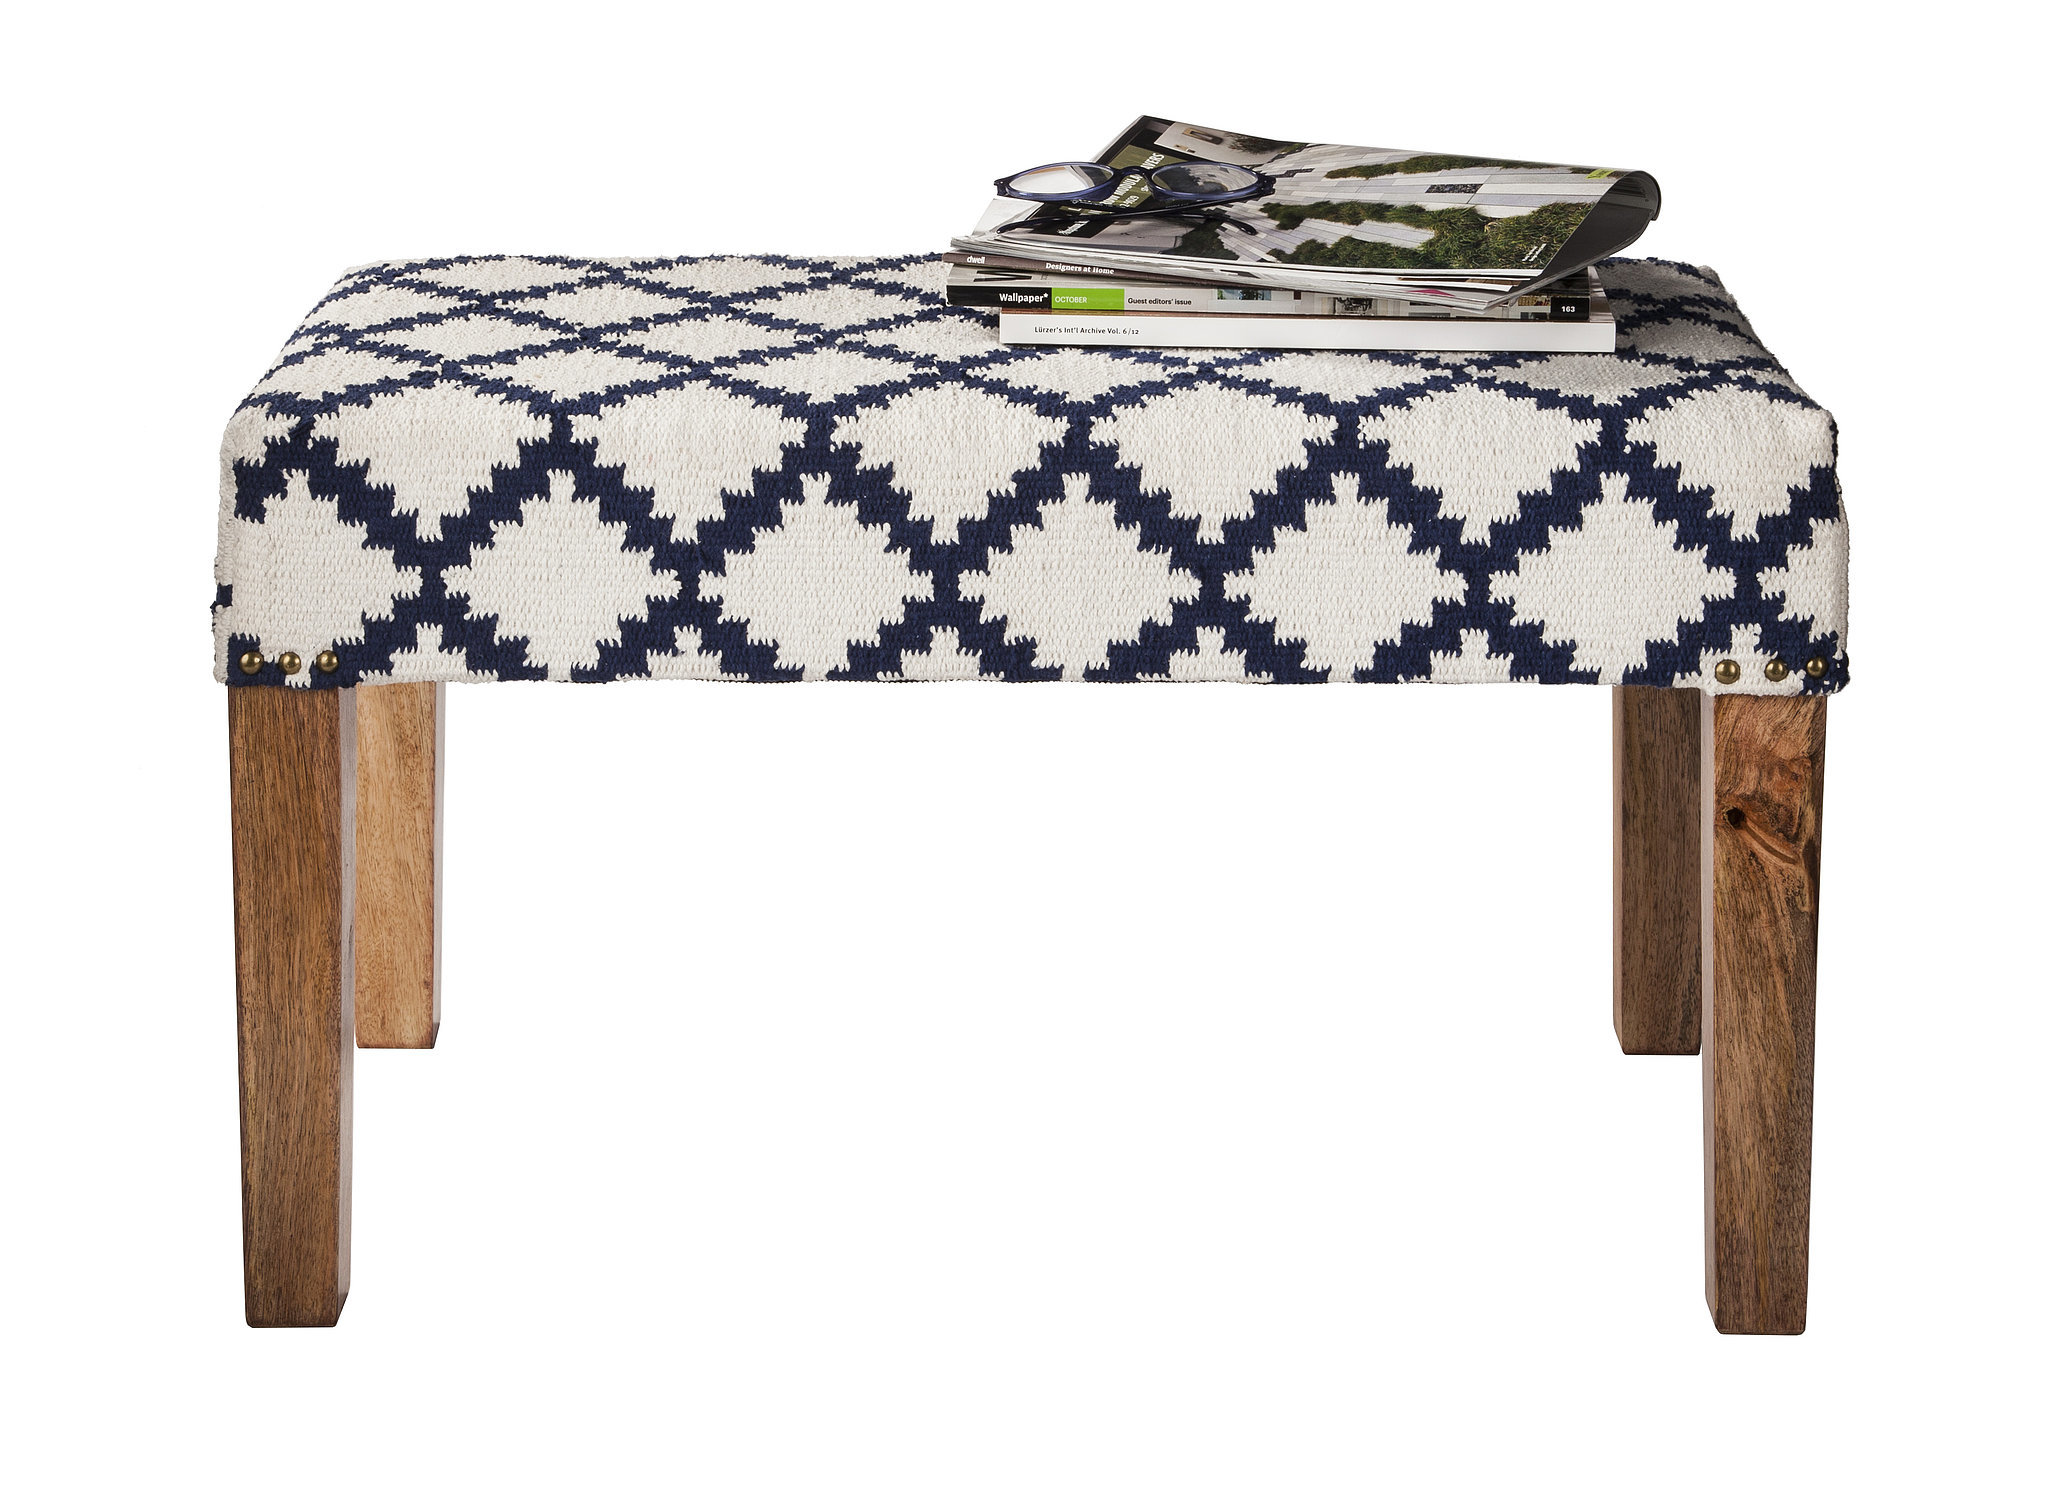 This petite bench ($100) works well for an entryway or an unused corner.